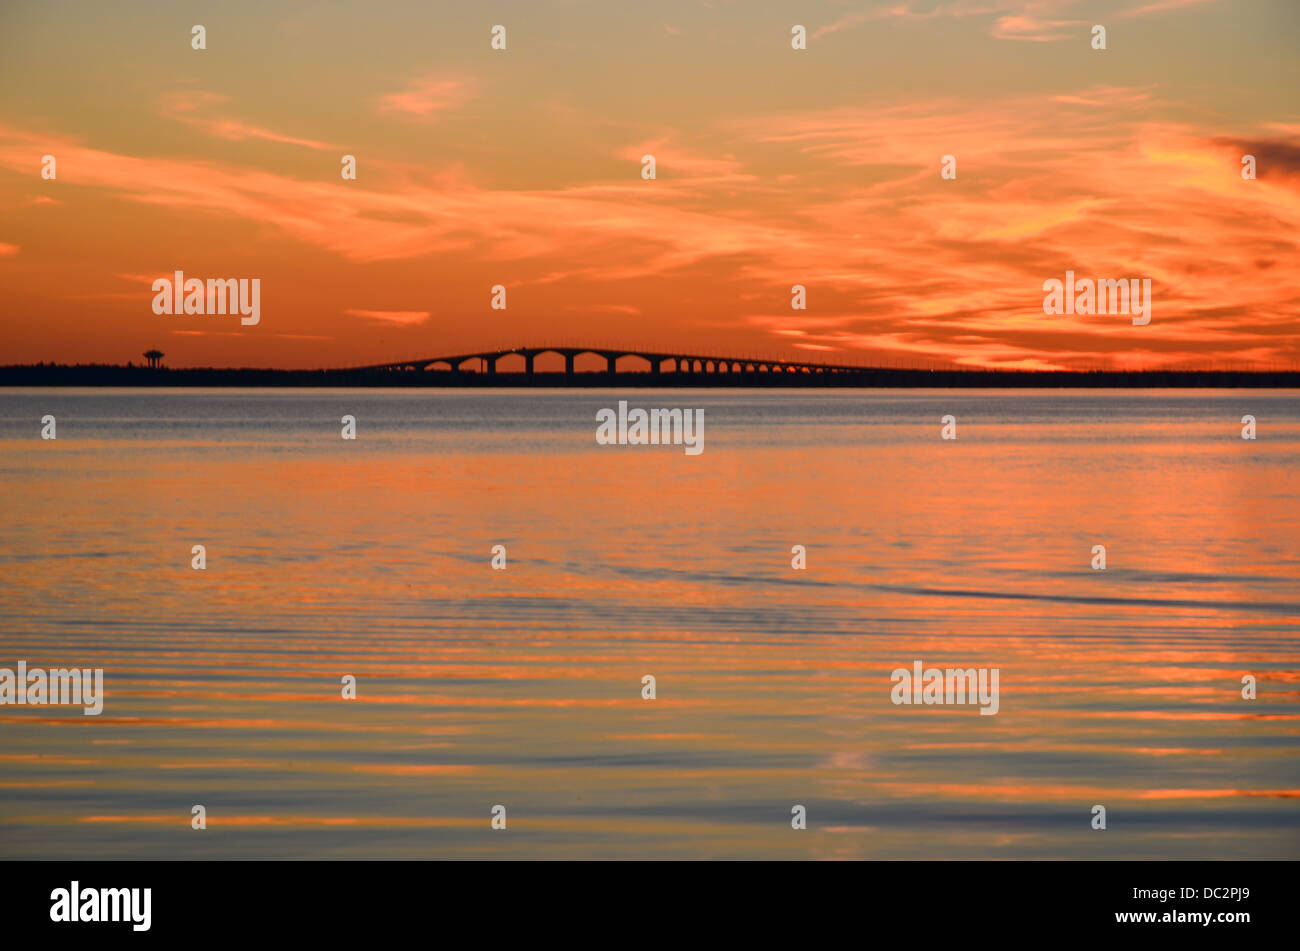 Oland bridge connects the island Oland in the Baltic sea with mainland Sweden Stock Photo